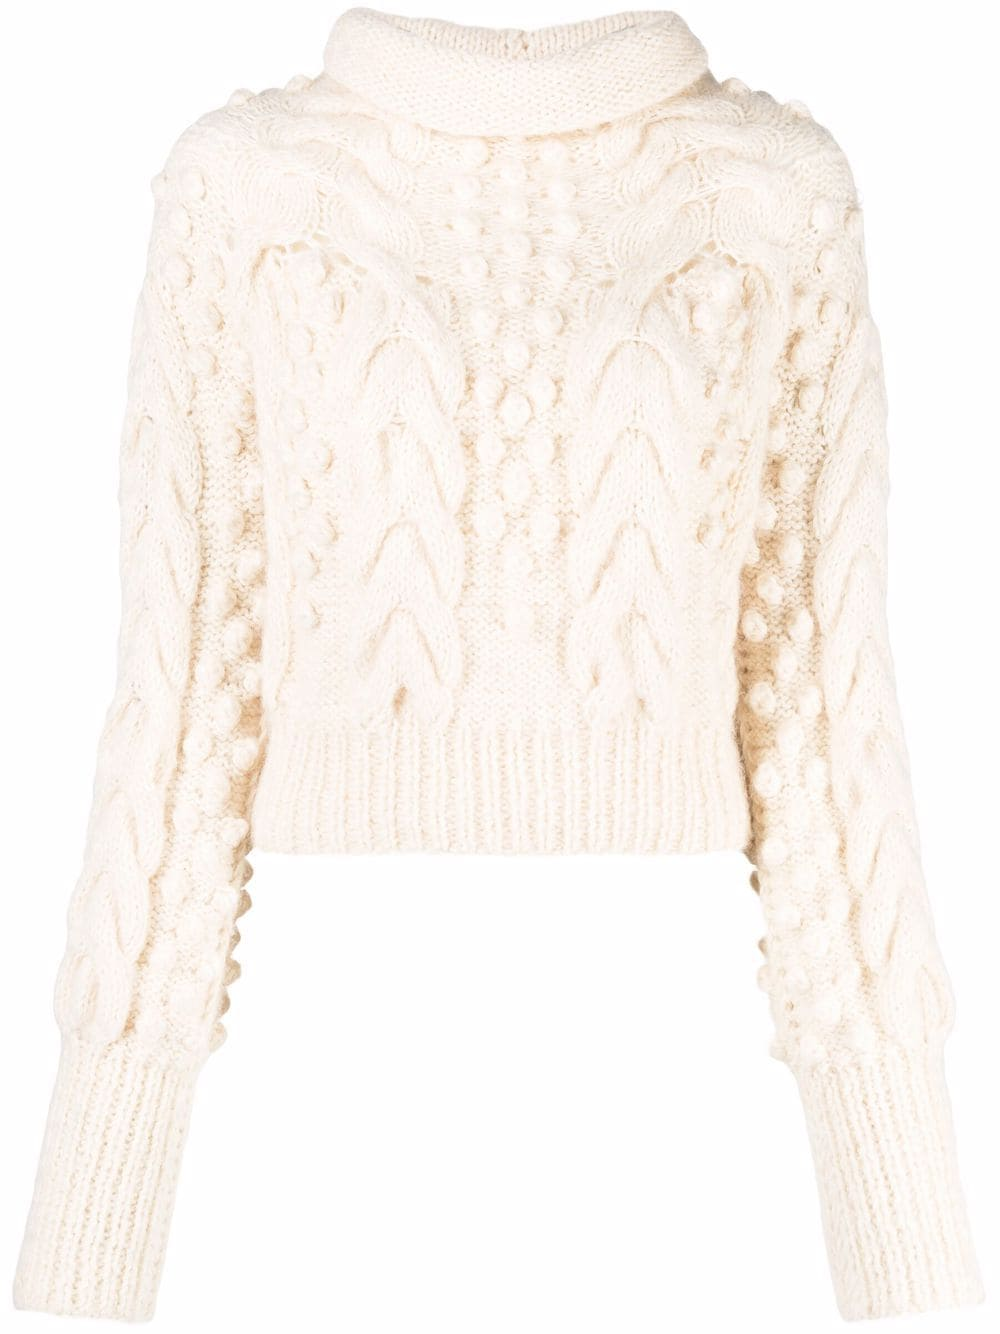 CONCEPTO Pullover mit Zopfmuster - Nude